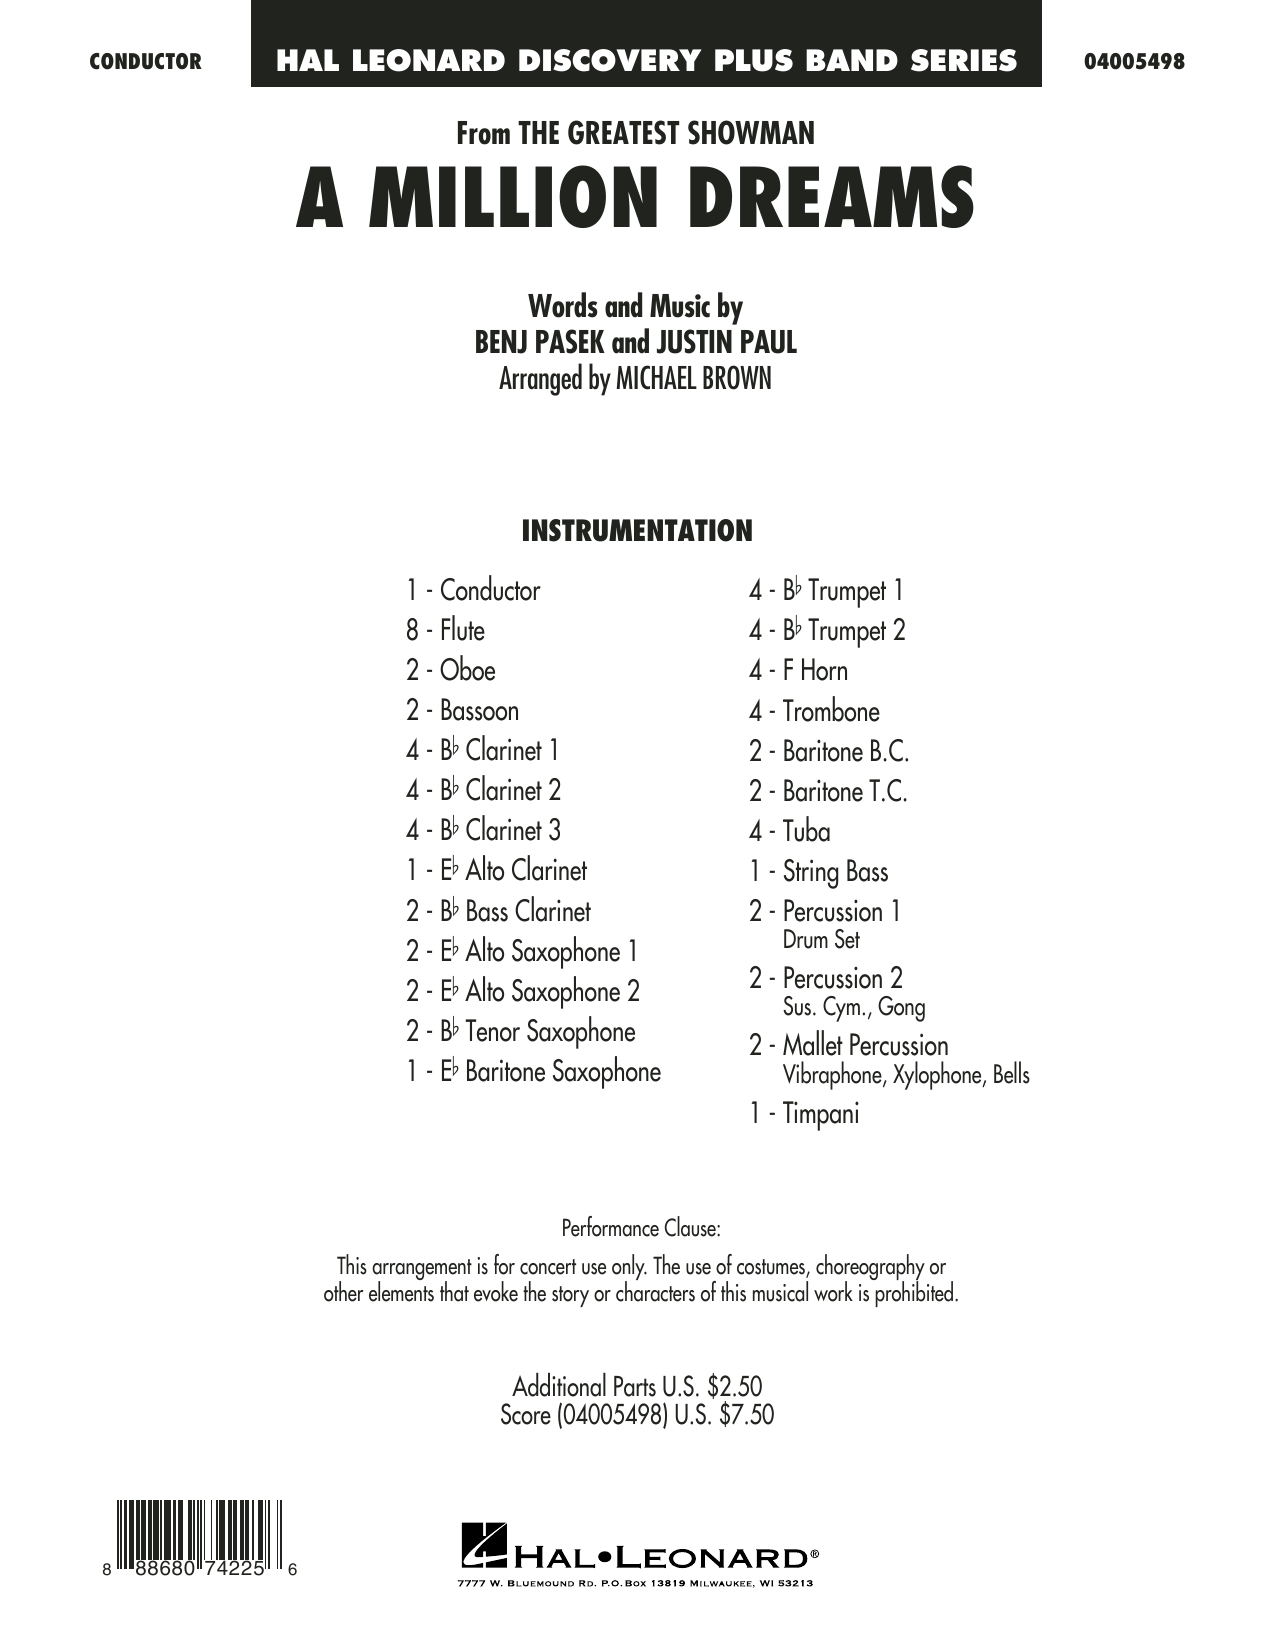 Pasek & Paul A Million Dreams (from The Greatest Showman) (arr. Michael Brown) - Full Score sheet music notes and chords. Download Printable PDF.